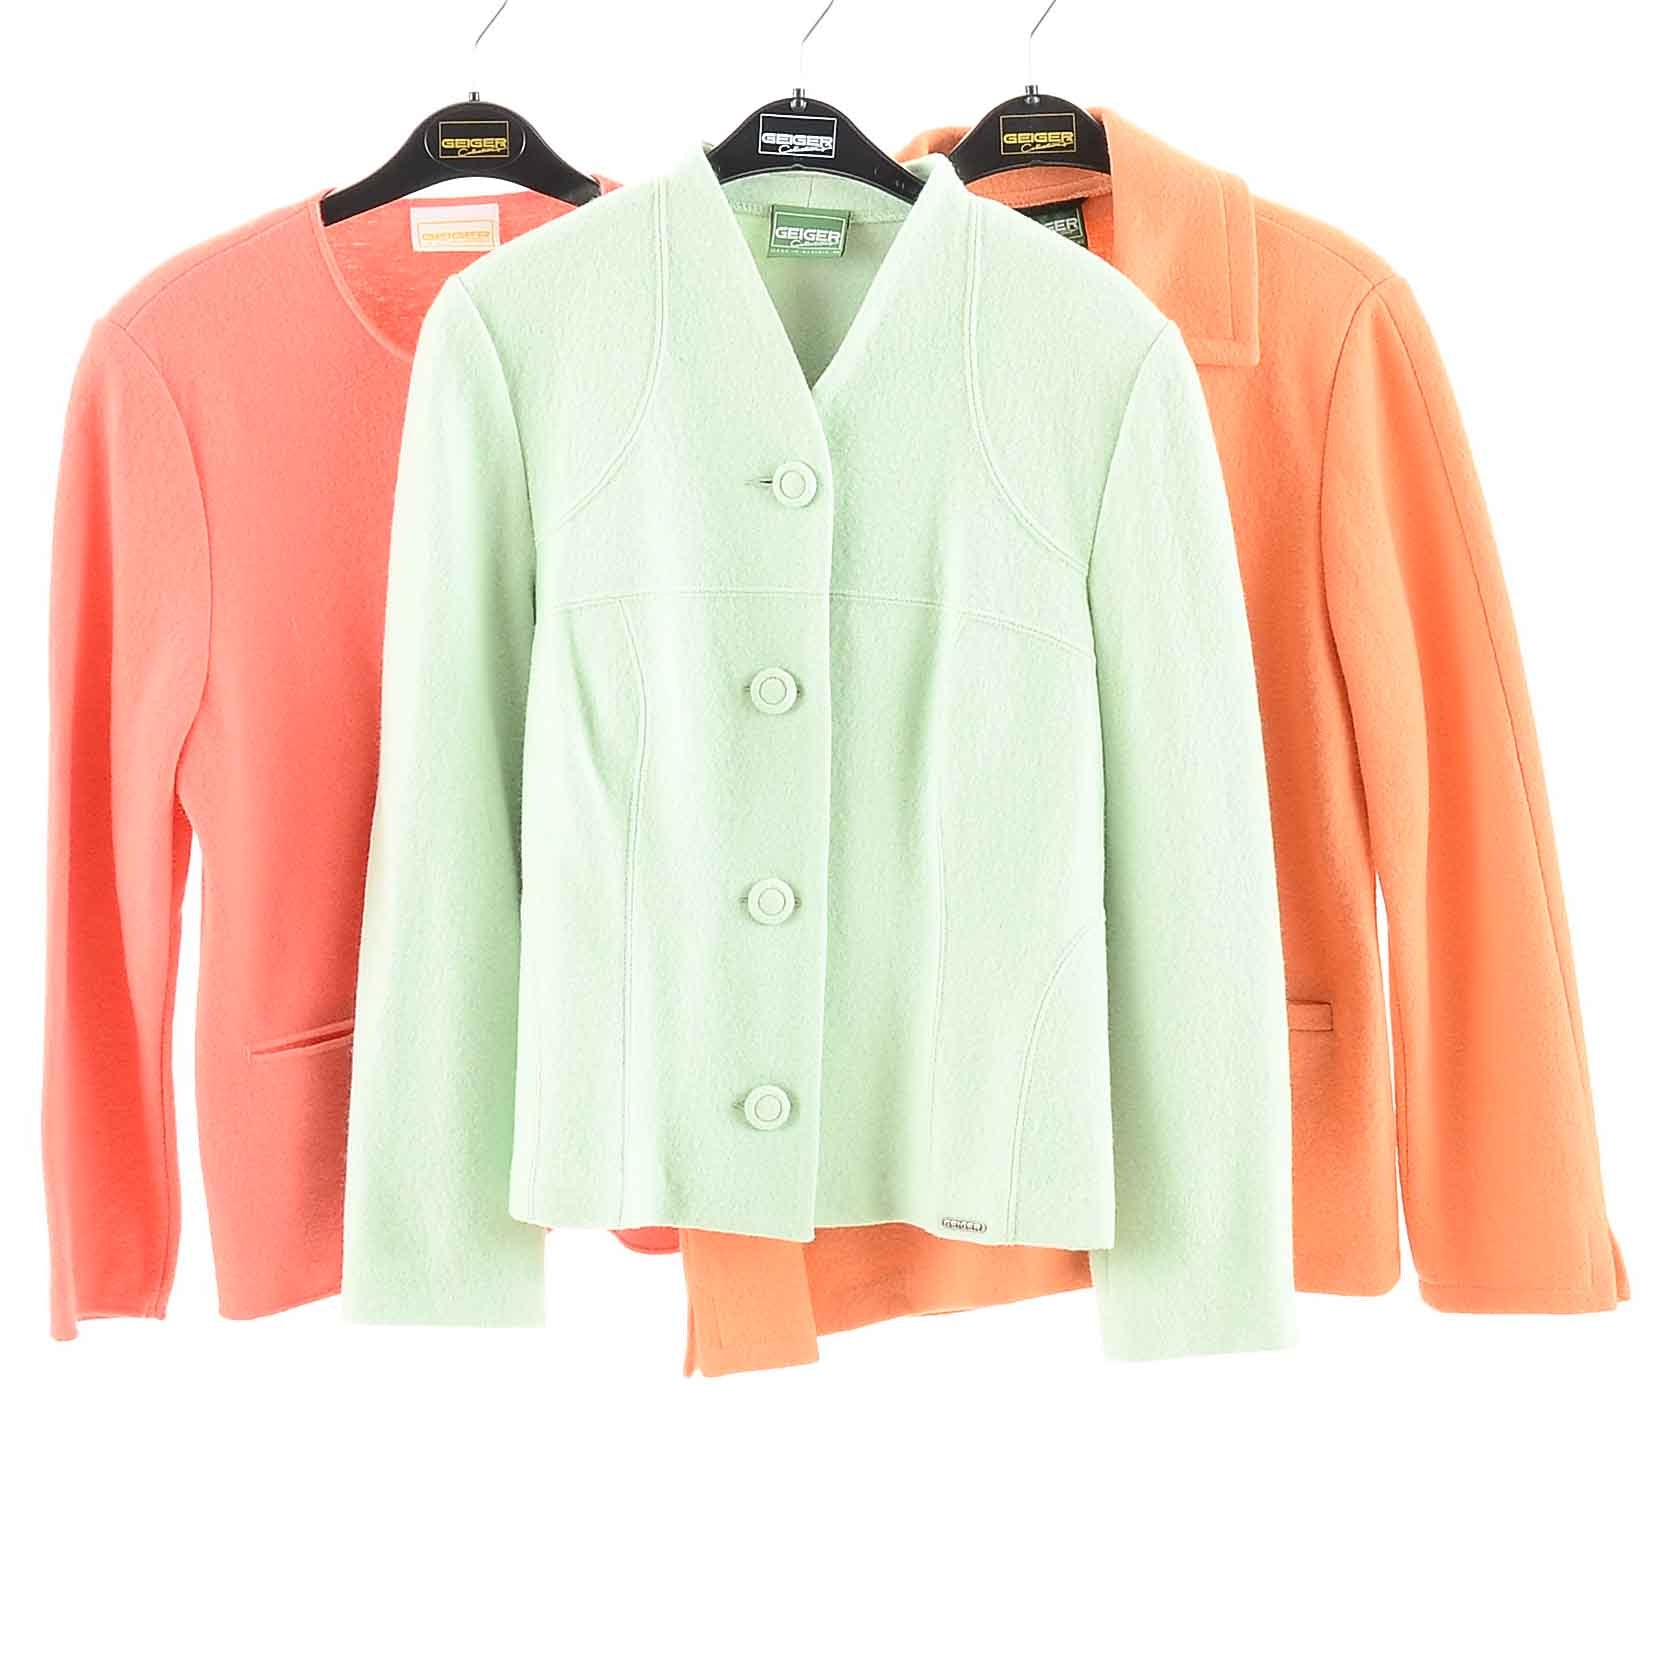 Collection of Geiger Wool Jackets